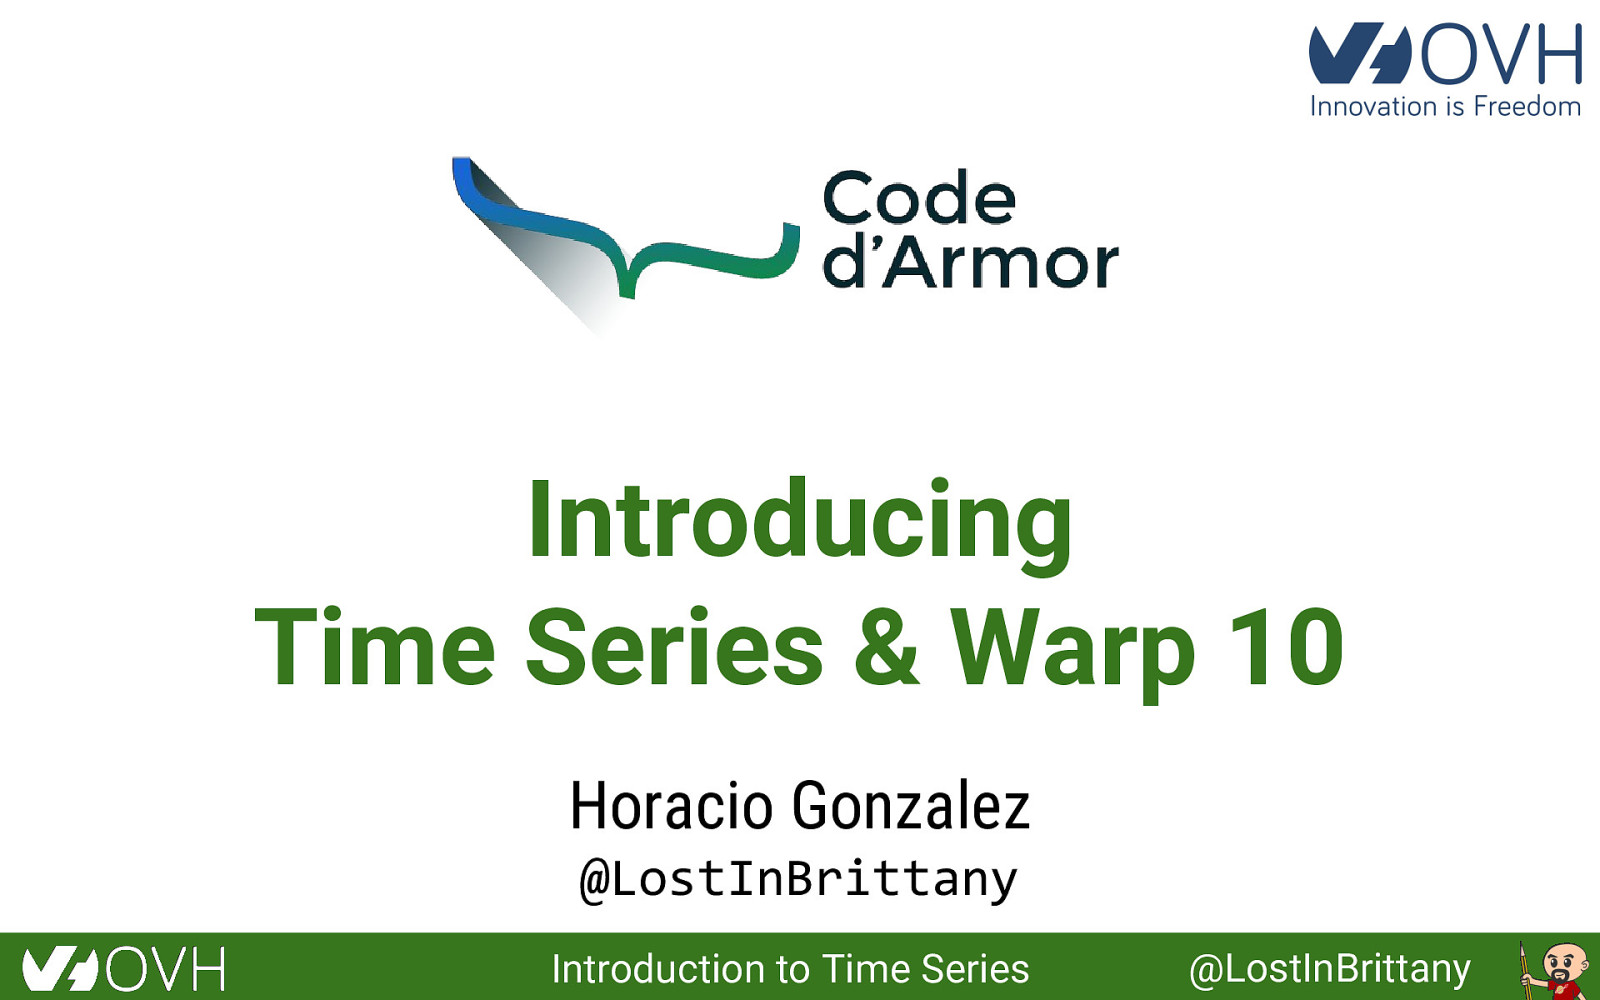 Introducing Time Series & Warp 10